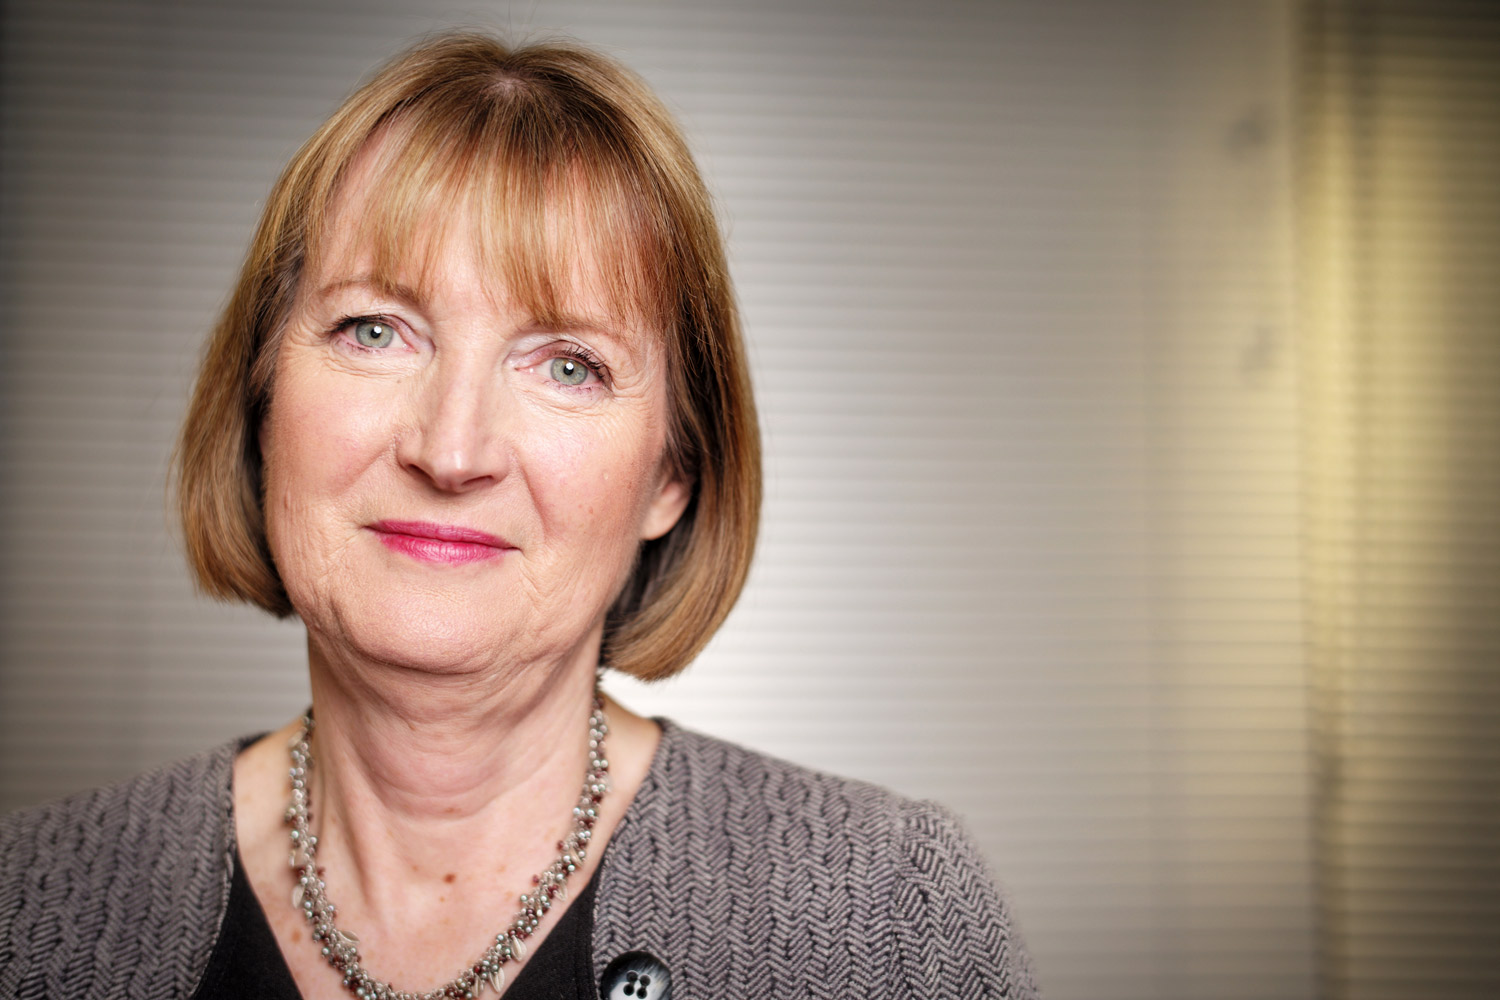 Harriet_Harman.jpg